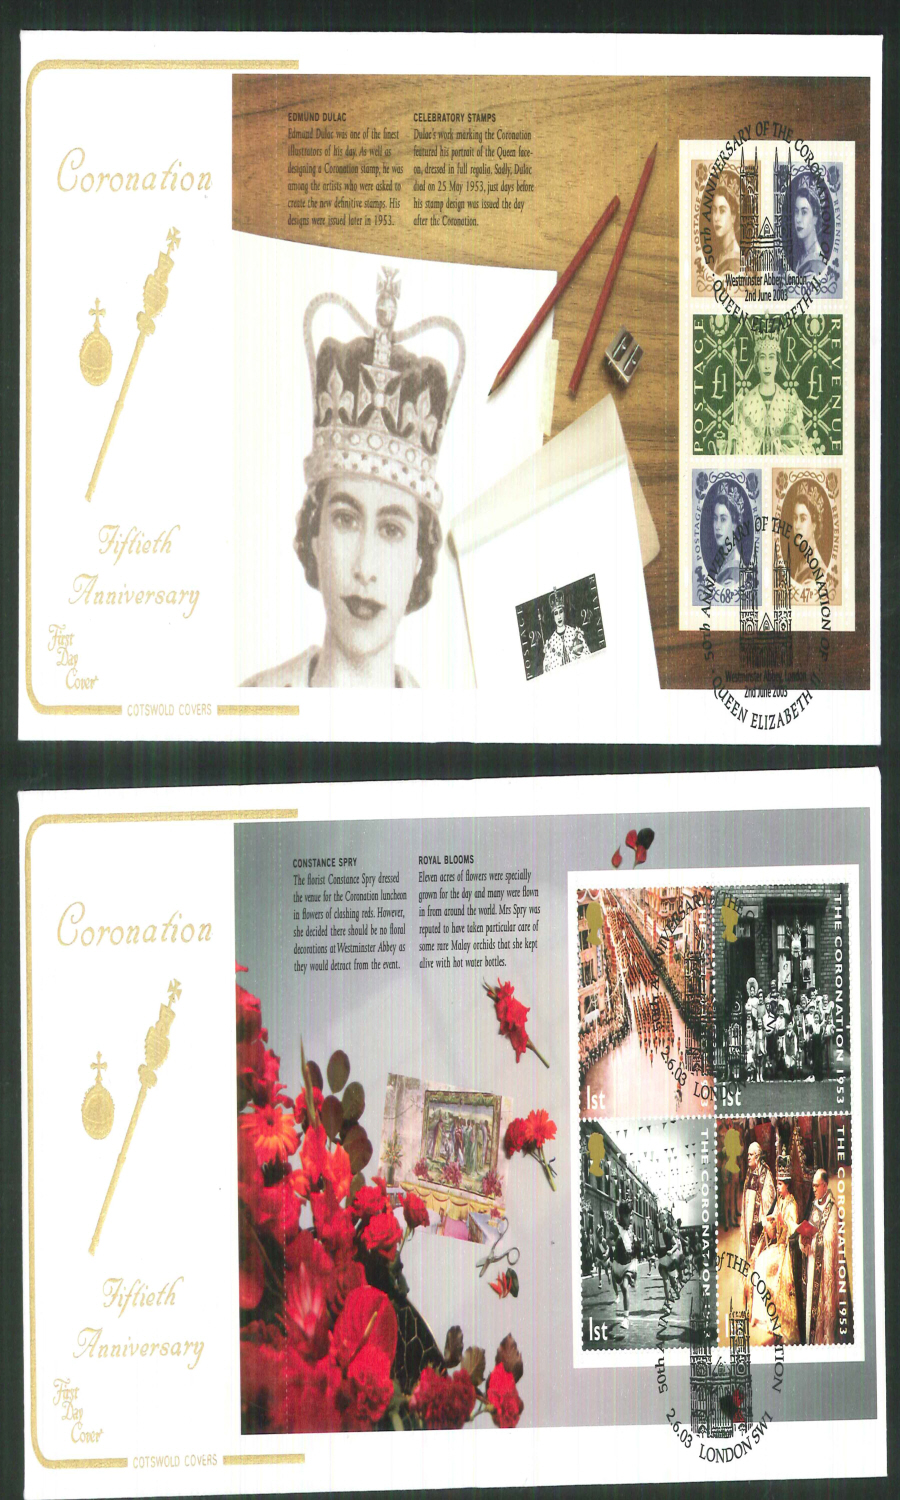 2003 - Coronation 50th Anniv - Prestige Stamp Book Set of 4 Covers - Various Postmarks